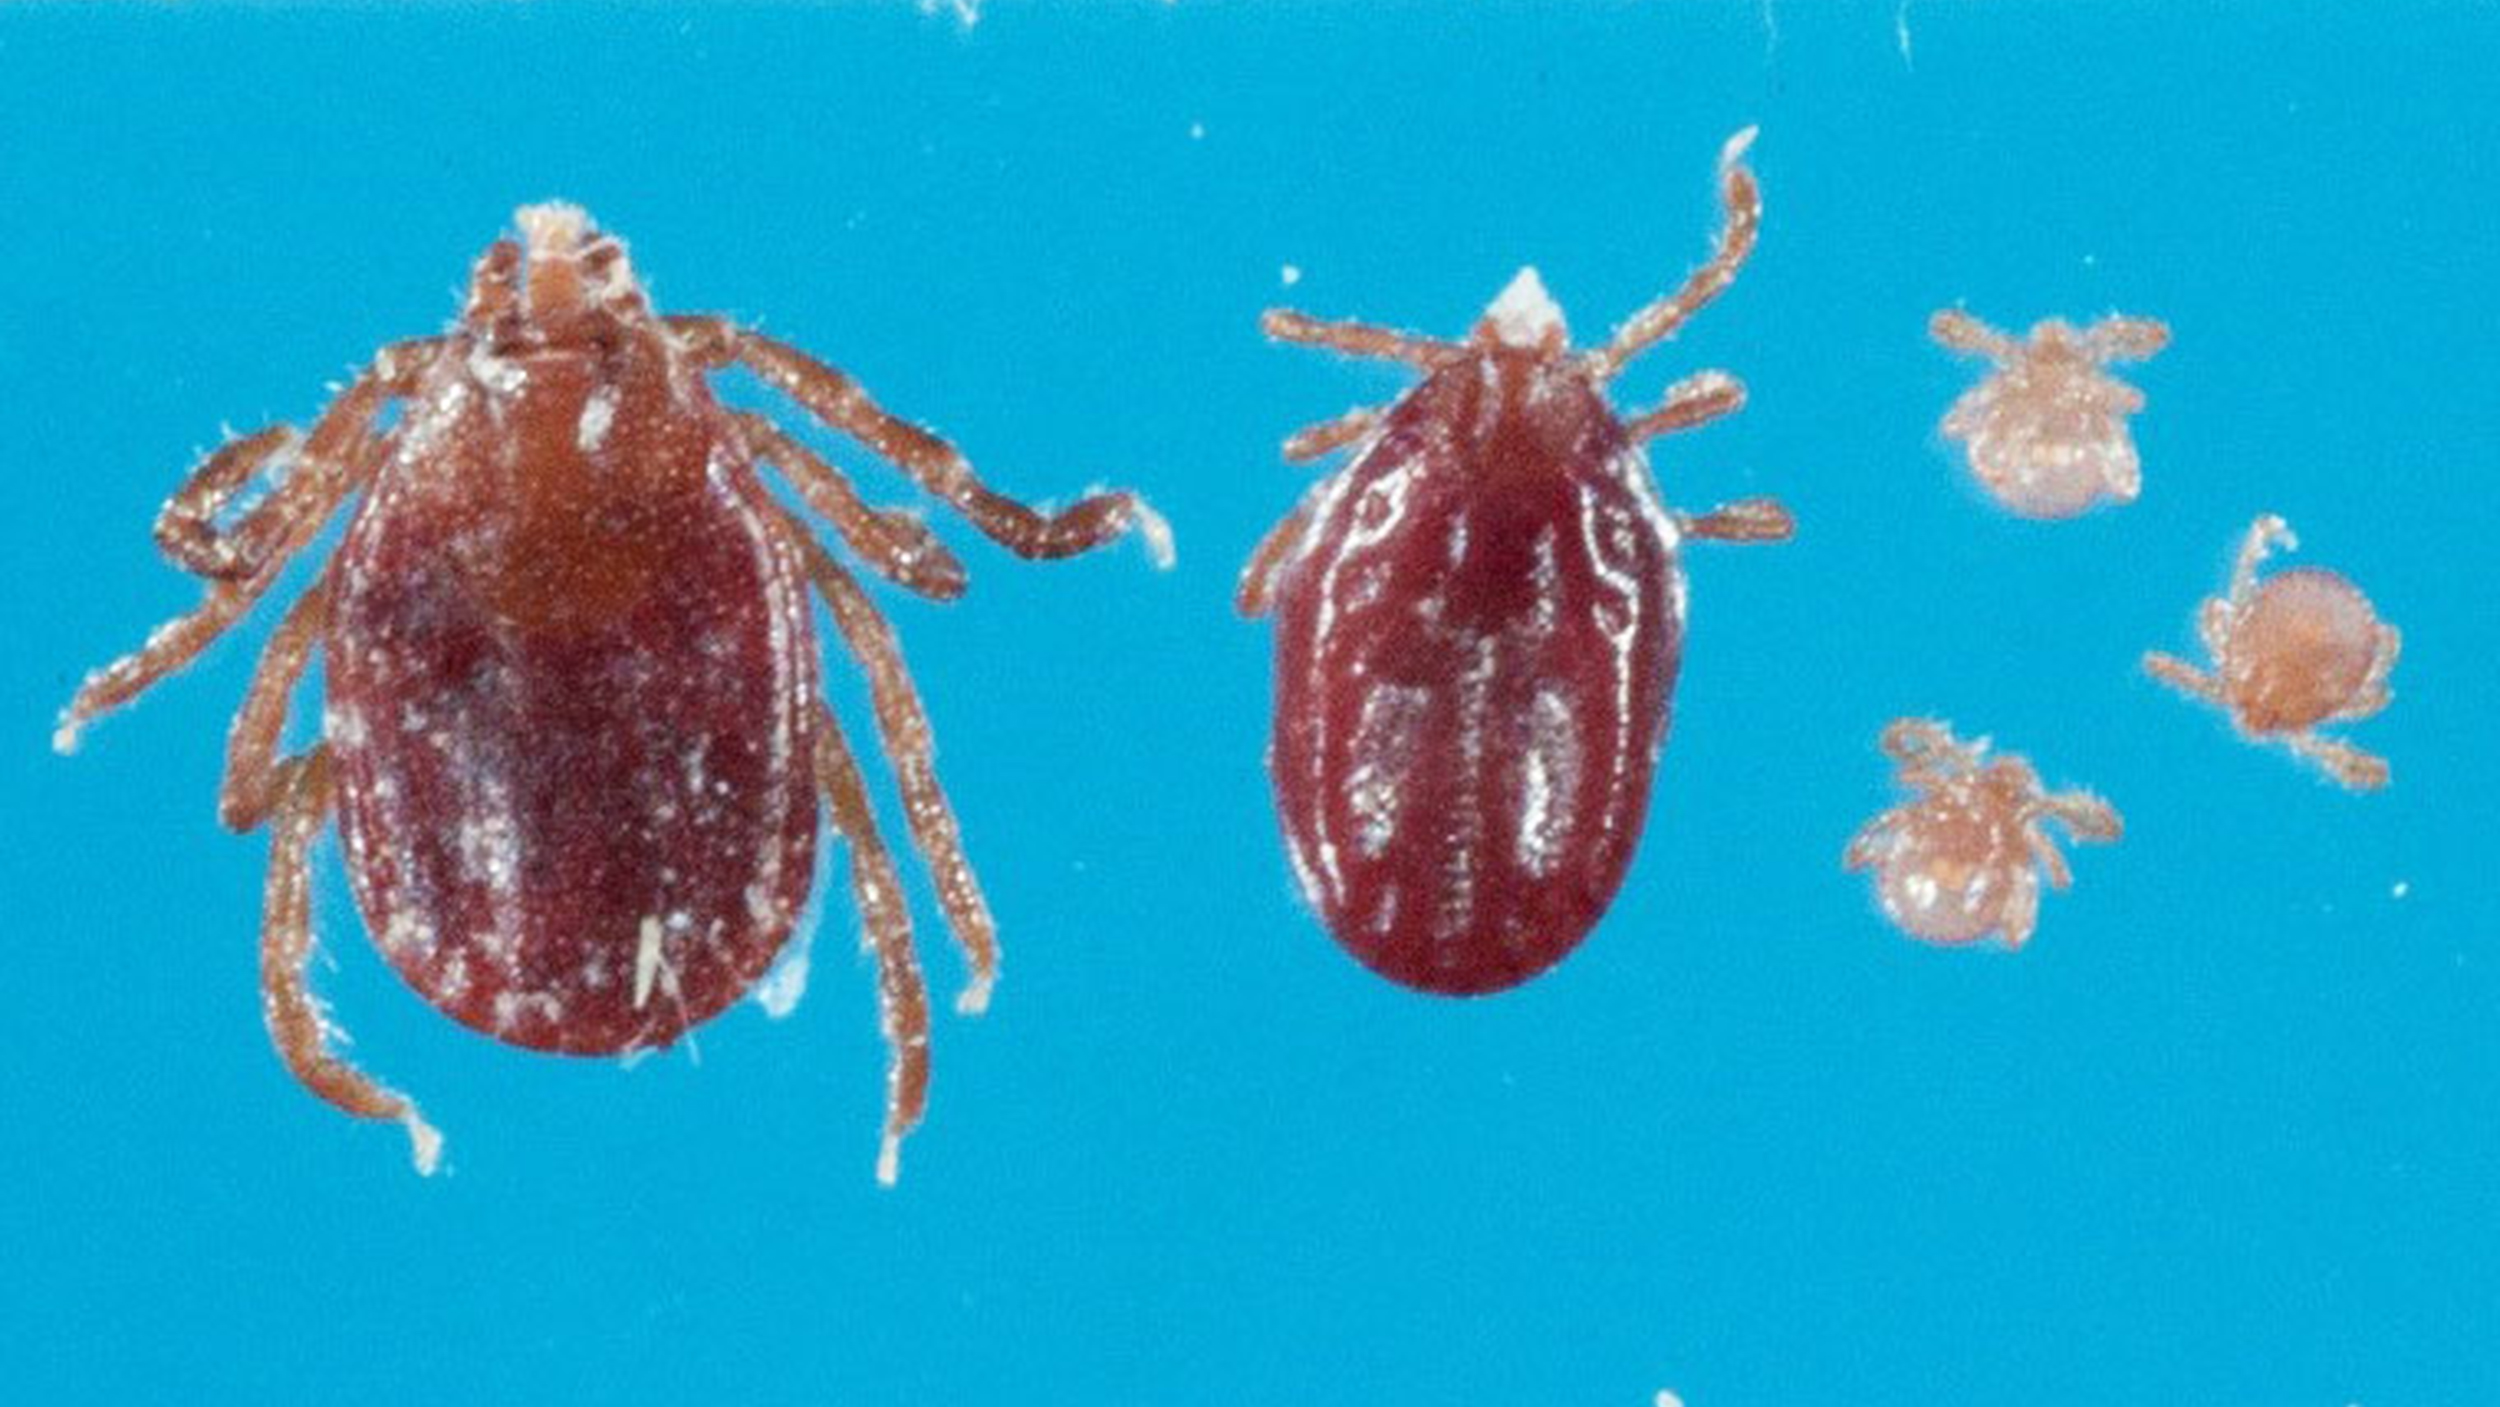 A Foreign Tick Species Has Invaded the U.S., Potentially Bringing New Diseases